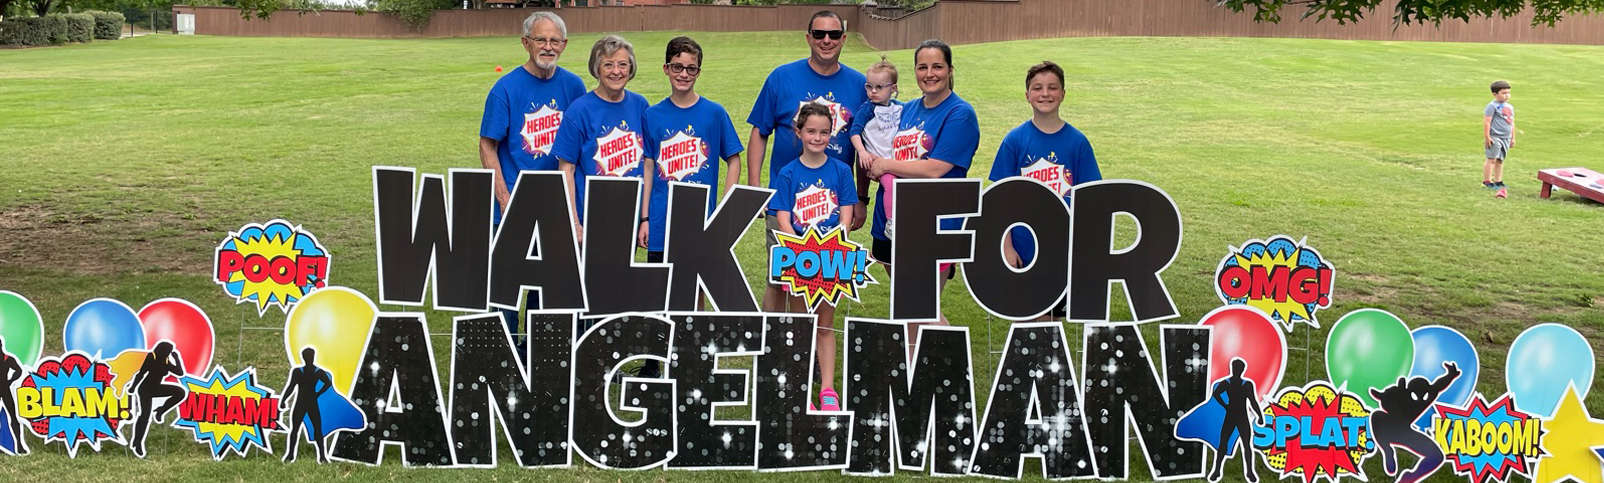 Family standing behind a Walk for Angelman sign